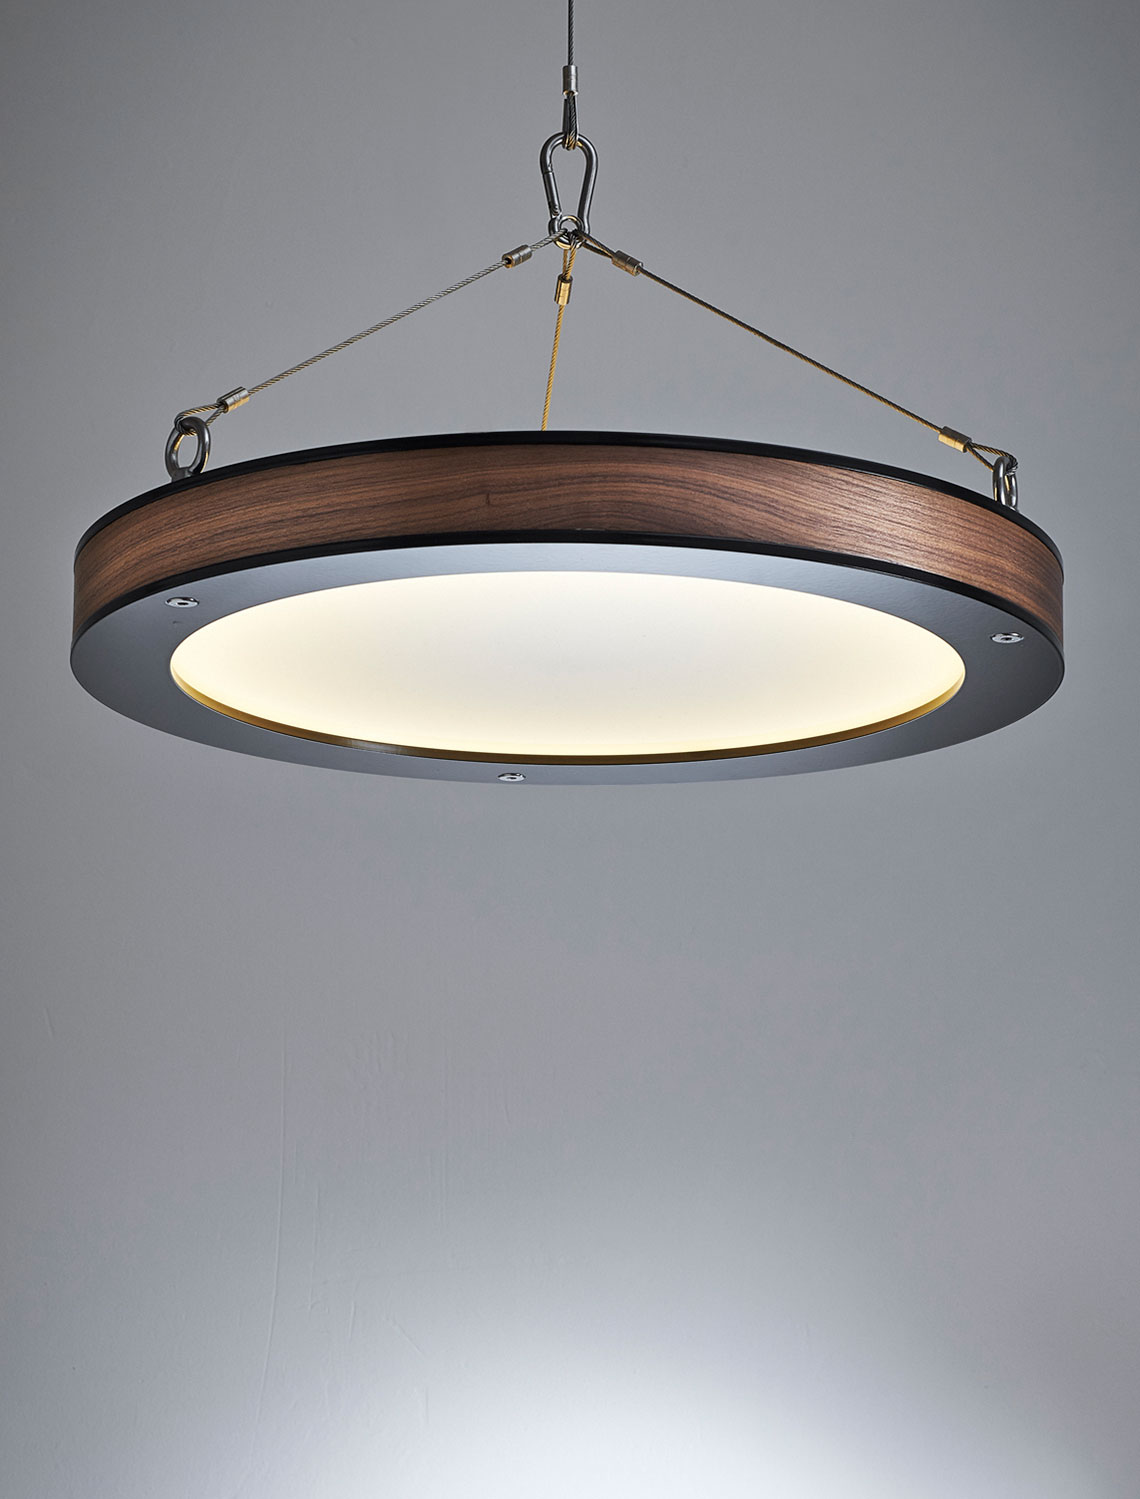 Hover Pendant by Christelh | Yellowtrace.